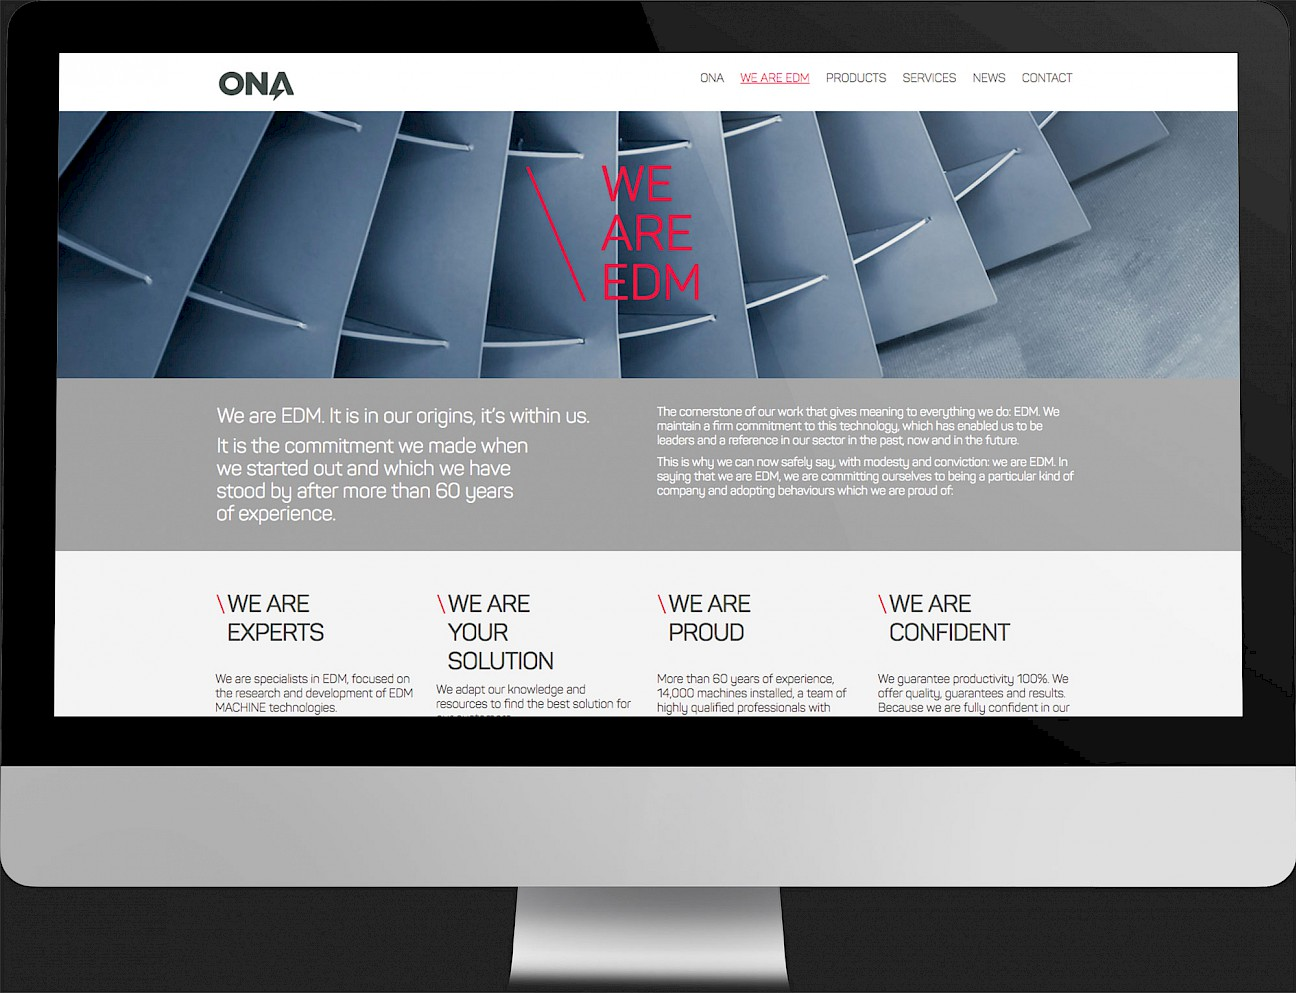 design digital move spaces website ona narrative branding 04 technology